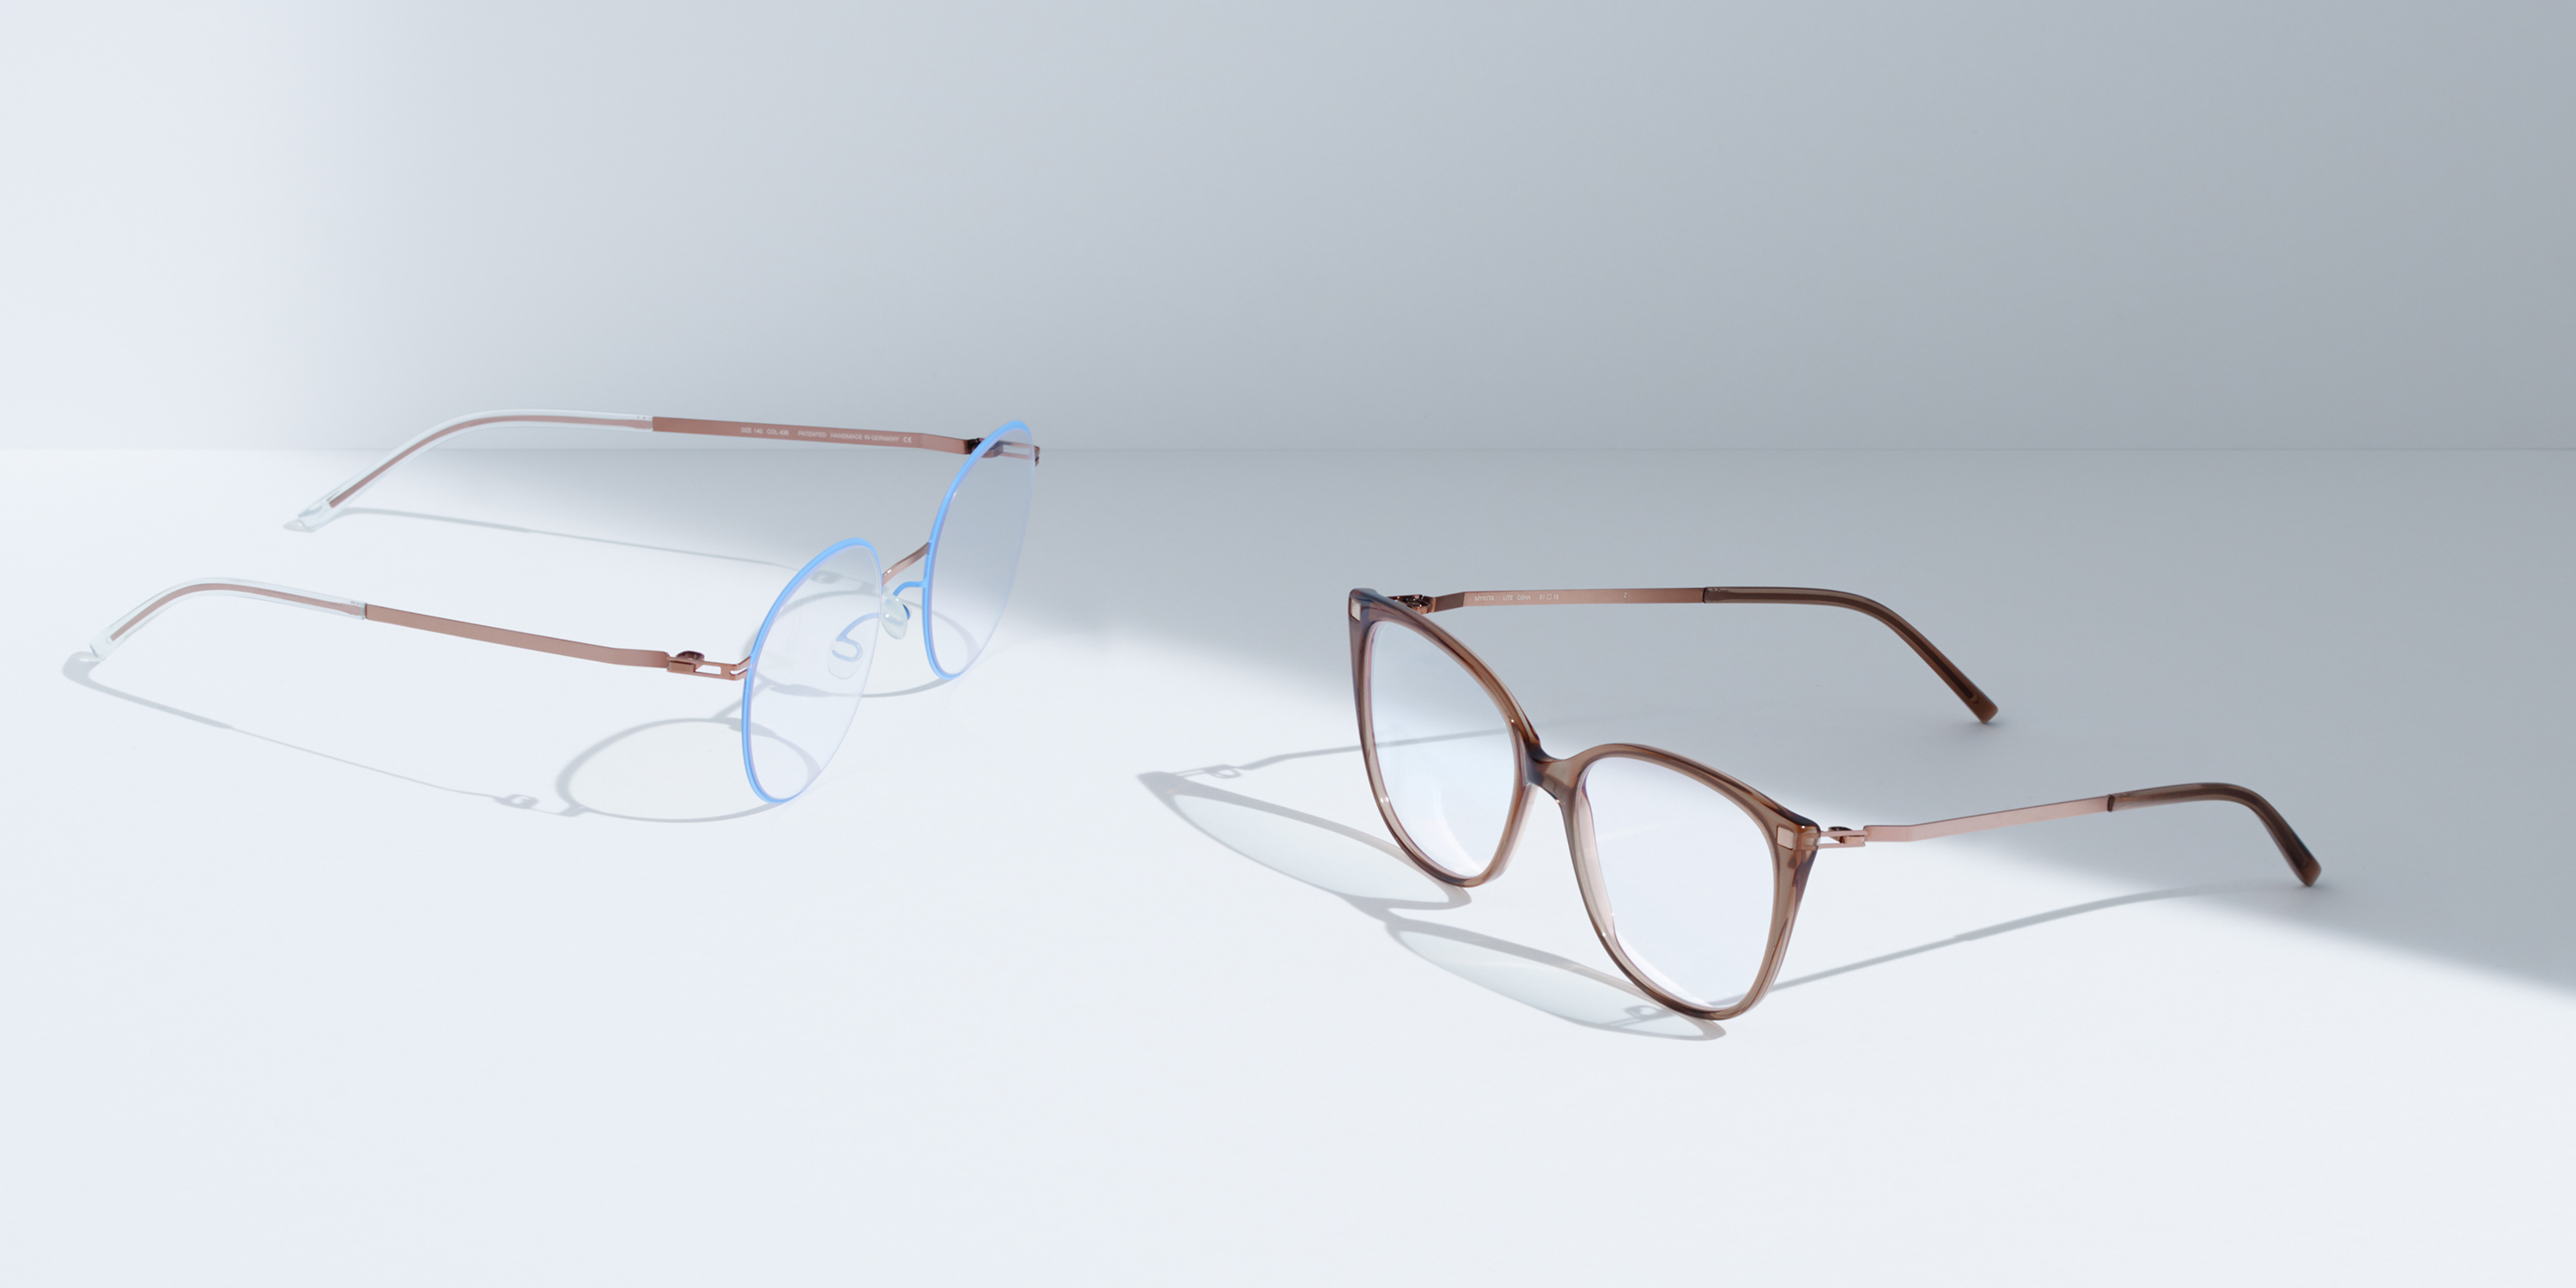 MYKITA Lite Acetate Rx Vabo Shiny Copper Light Blue Clear MYKITA Lite Acetate Rx Osha C73 Topaz Shiny Copper Clear